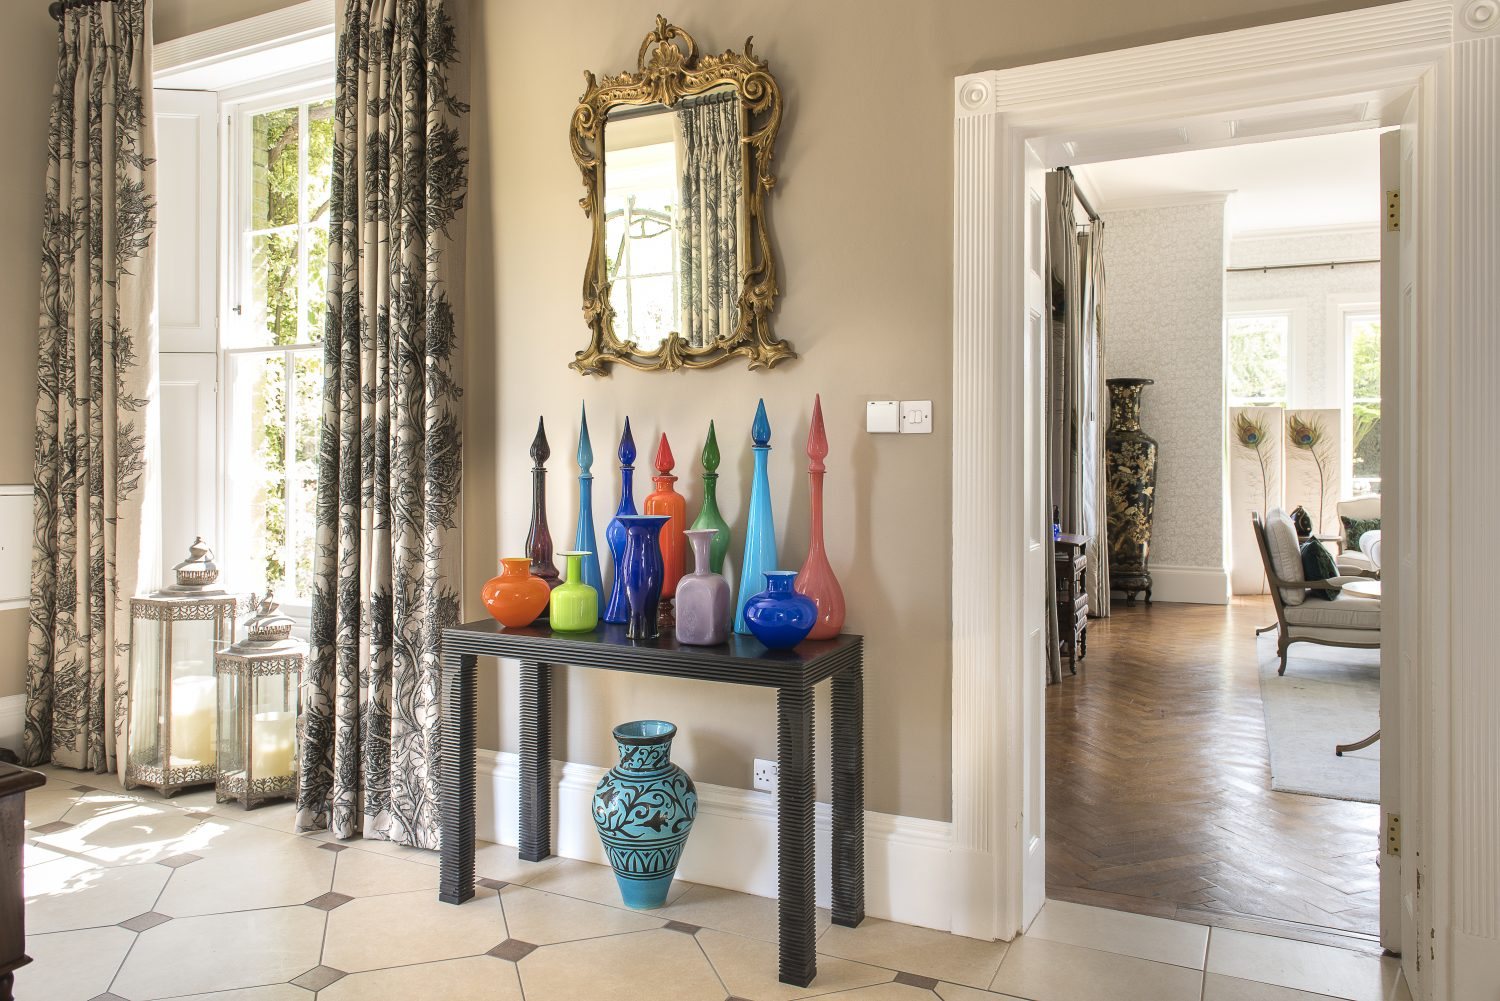 The first glimpse of Jane's extensive collection of Murano glass in the main hall. The ebony console table is by Gareth Neal